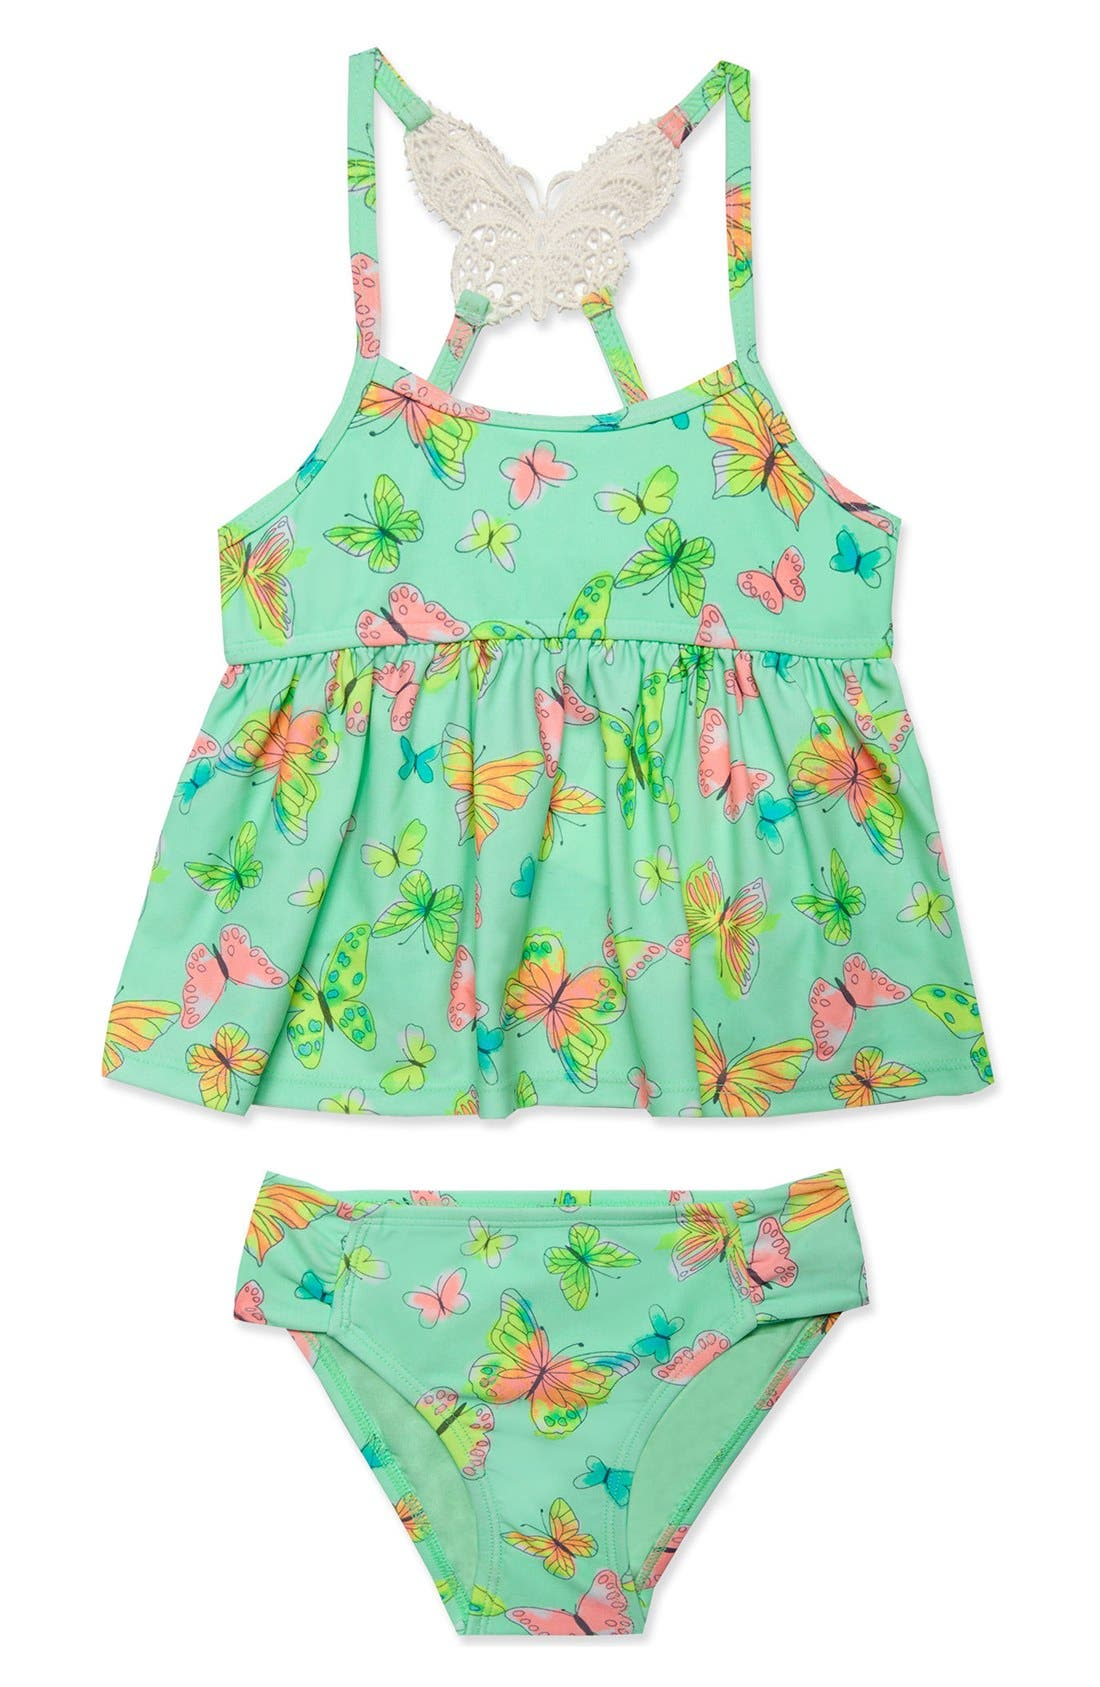 'Butterfly' Two-Piece Tankini Swimsuit,                             Main thumbnail 1, color,                             332